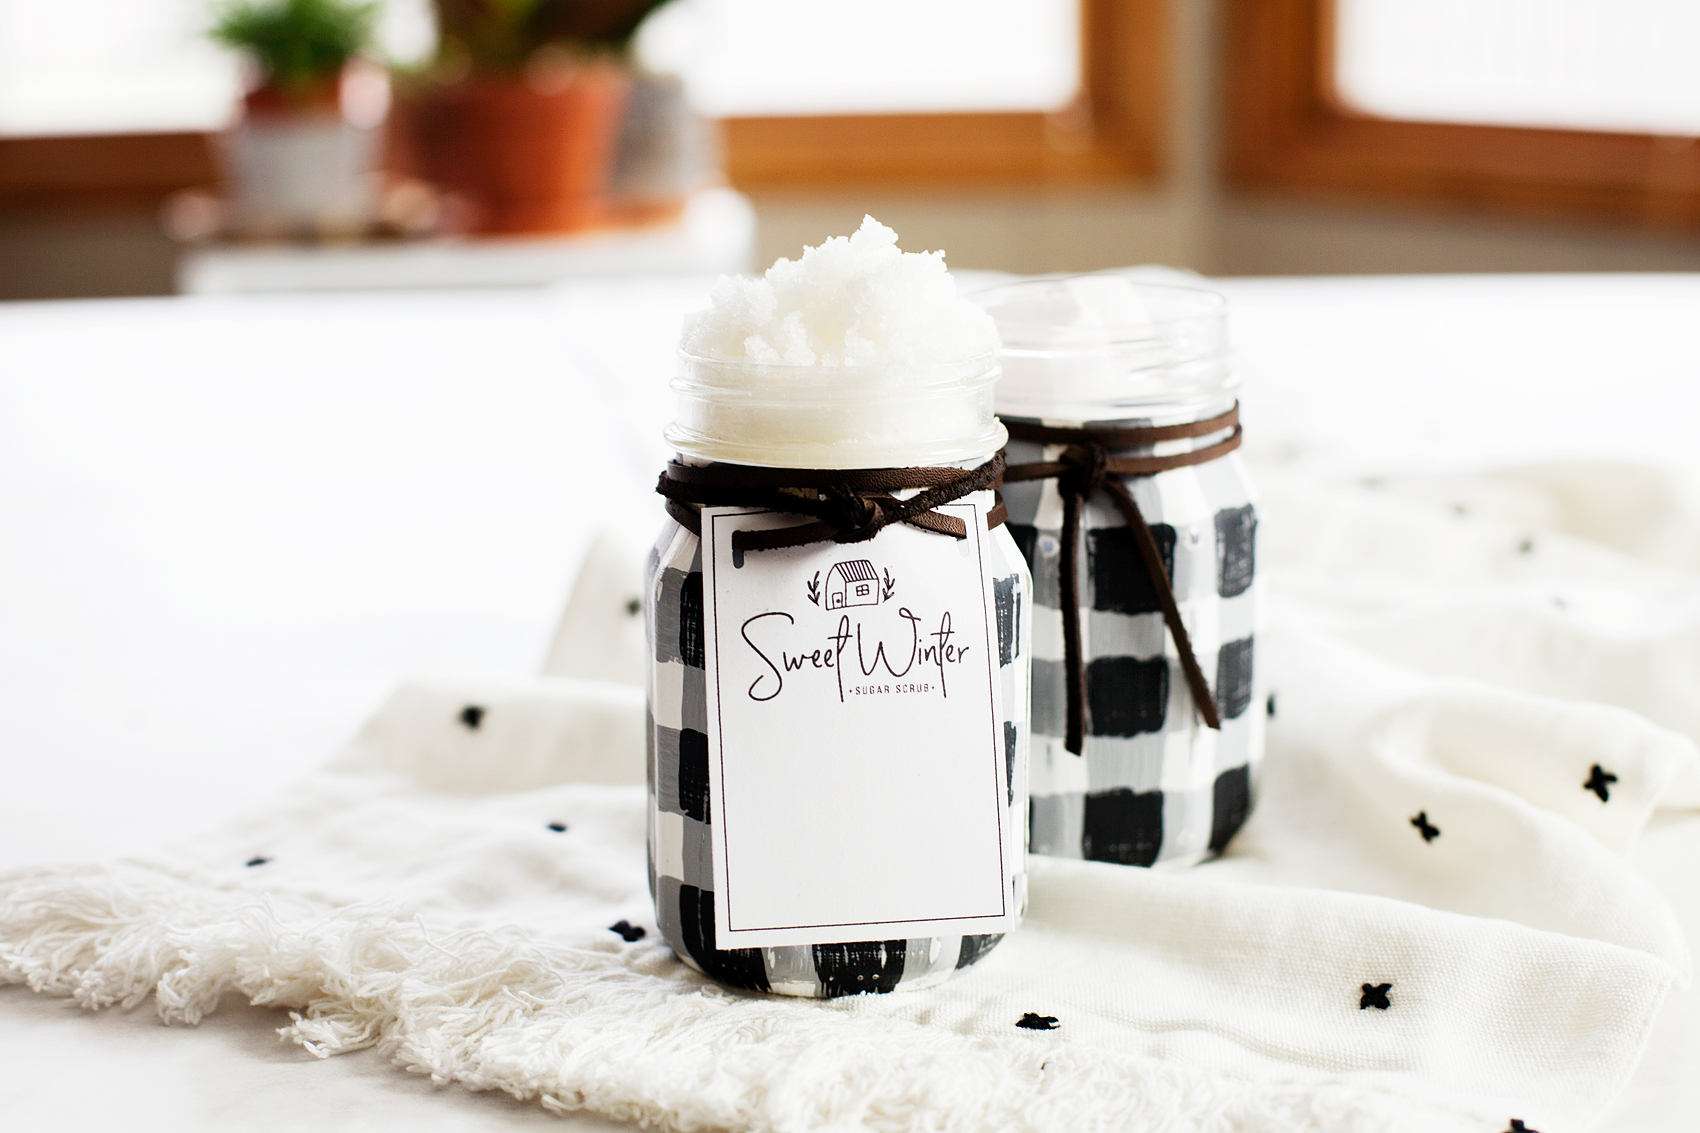 Sweet Winter Sugar Scrub from WhipperBerry